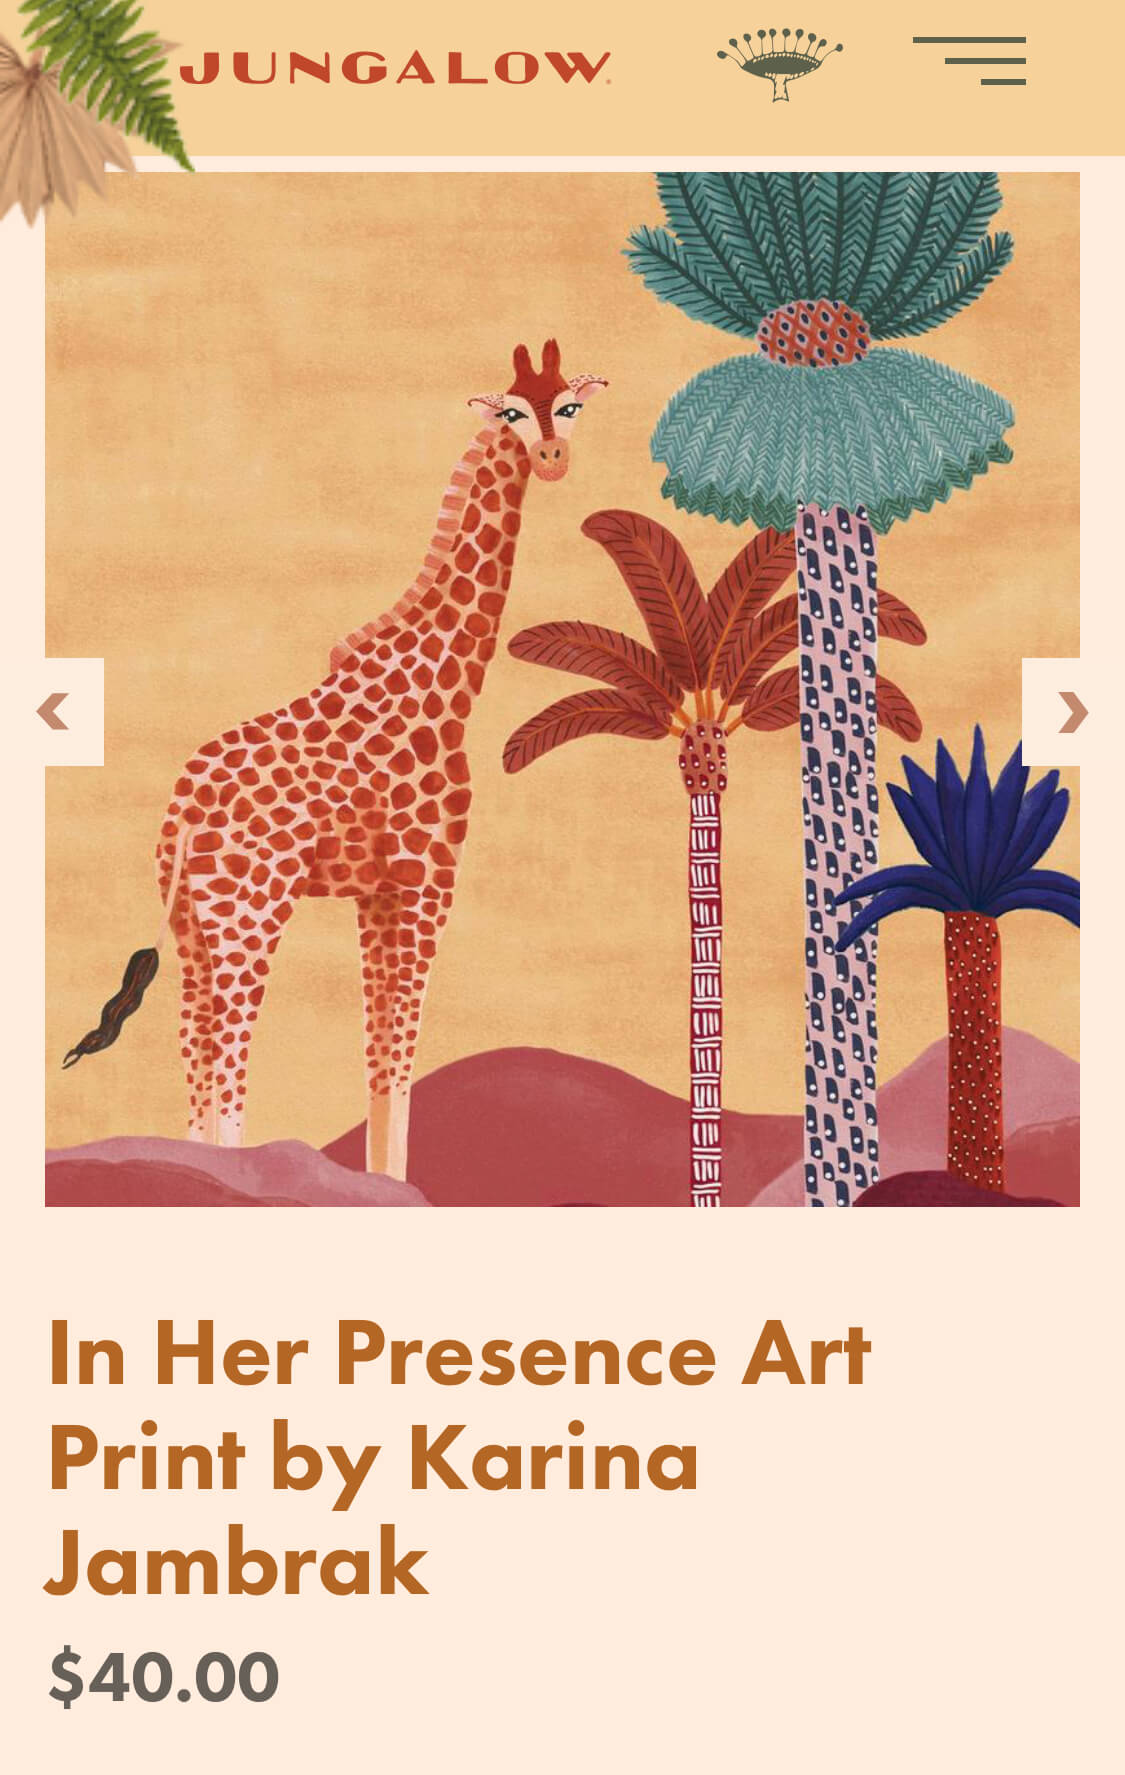 In Her Presence Art Print by Karina Jambrak